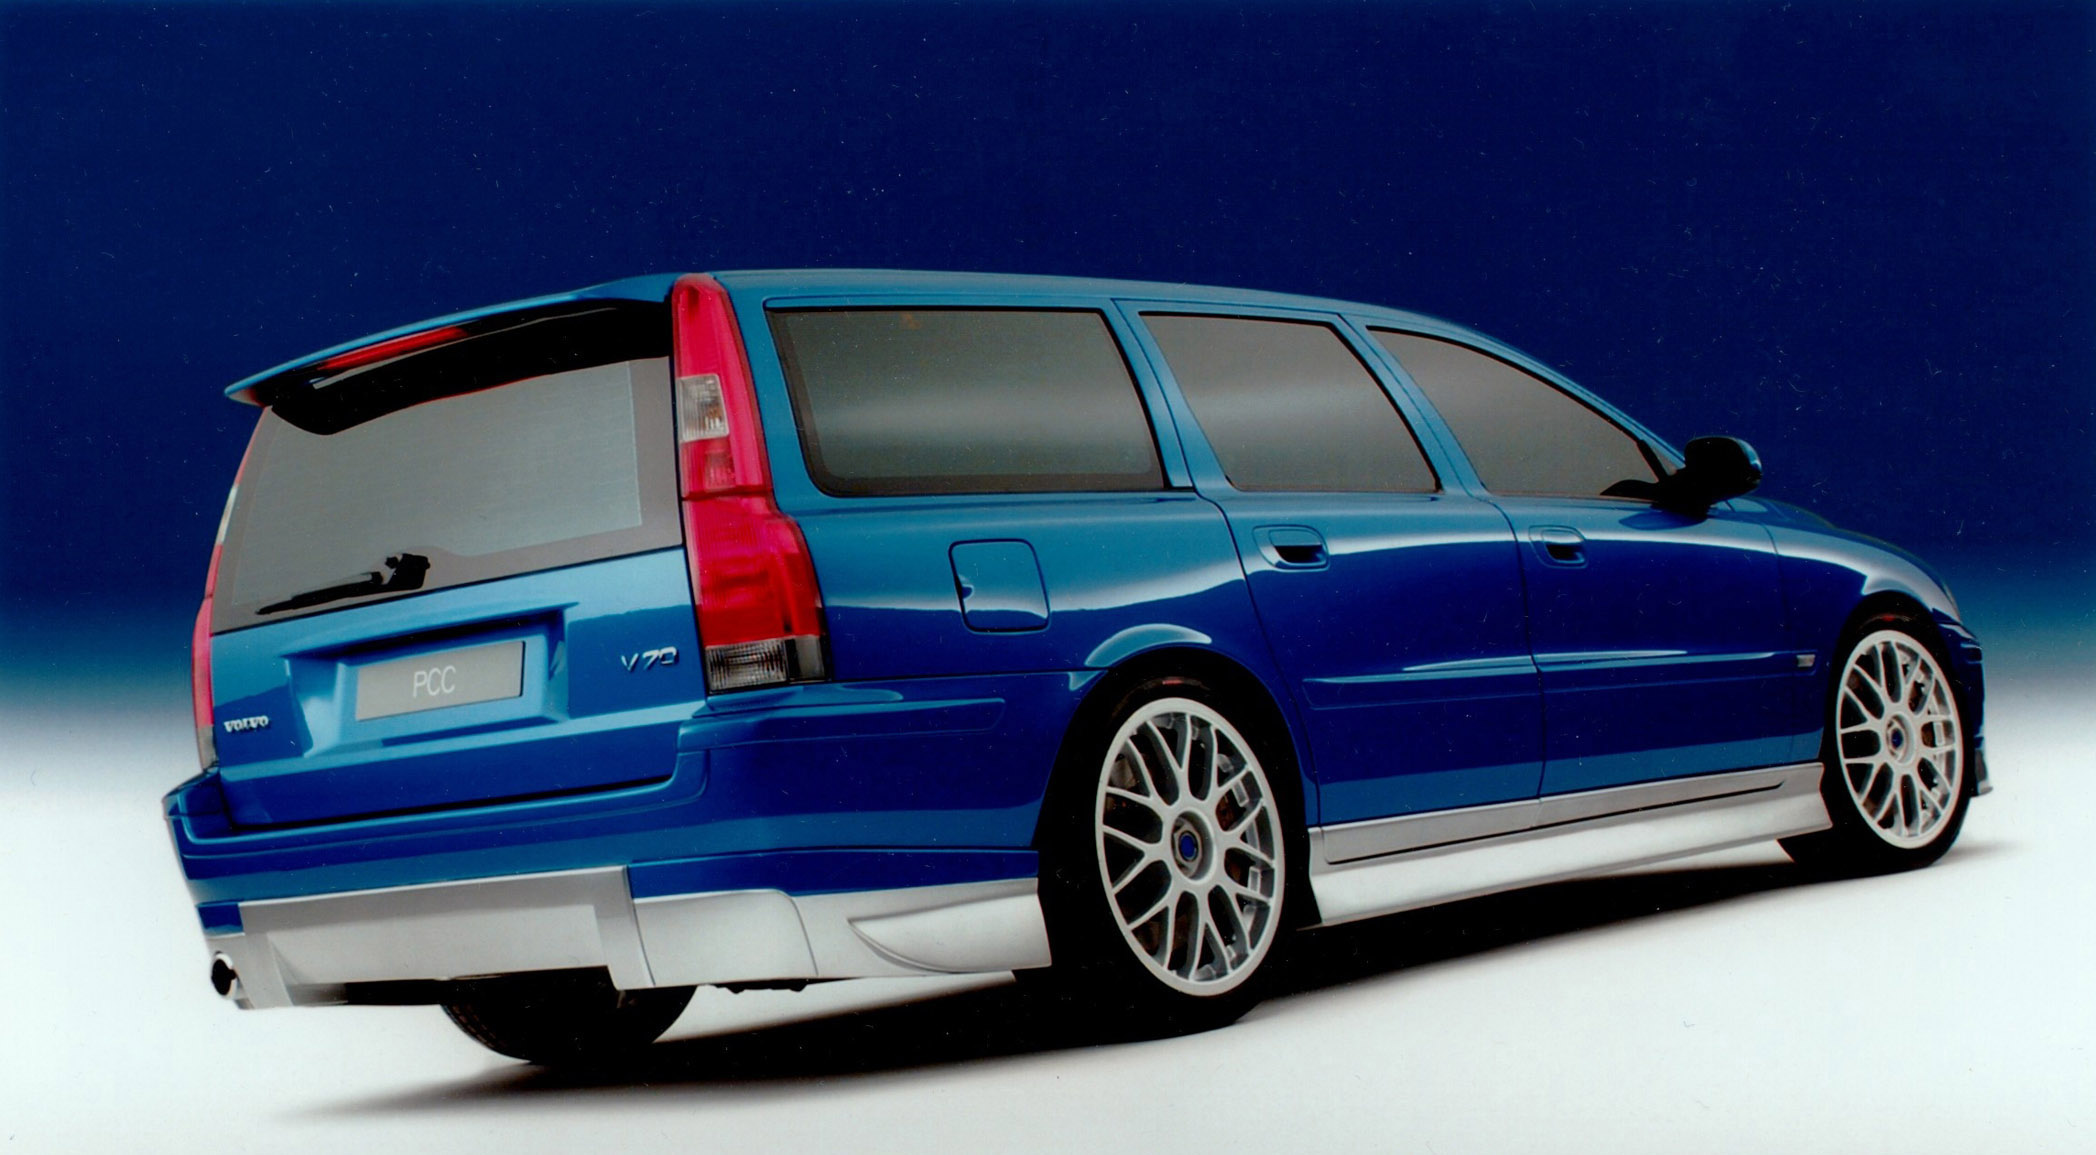 Remarkable Volvo V70 Car 2096 x 1155 · 315 kB · jpeg